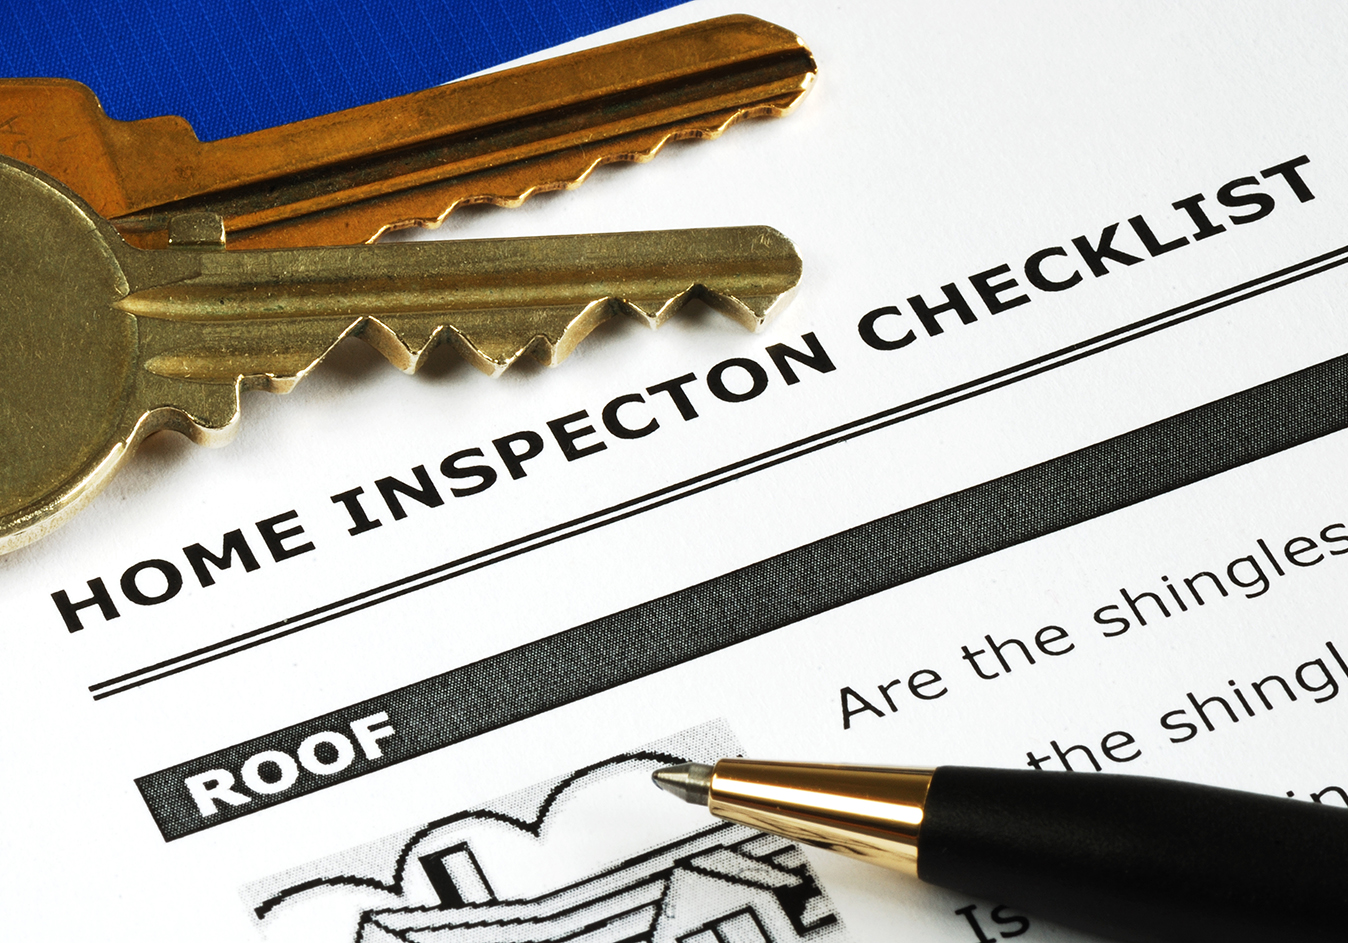 Best Vancouver Home Inspector, Home Inspection Checklist